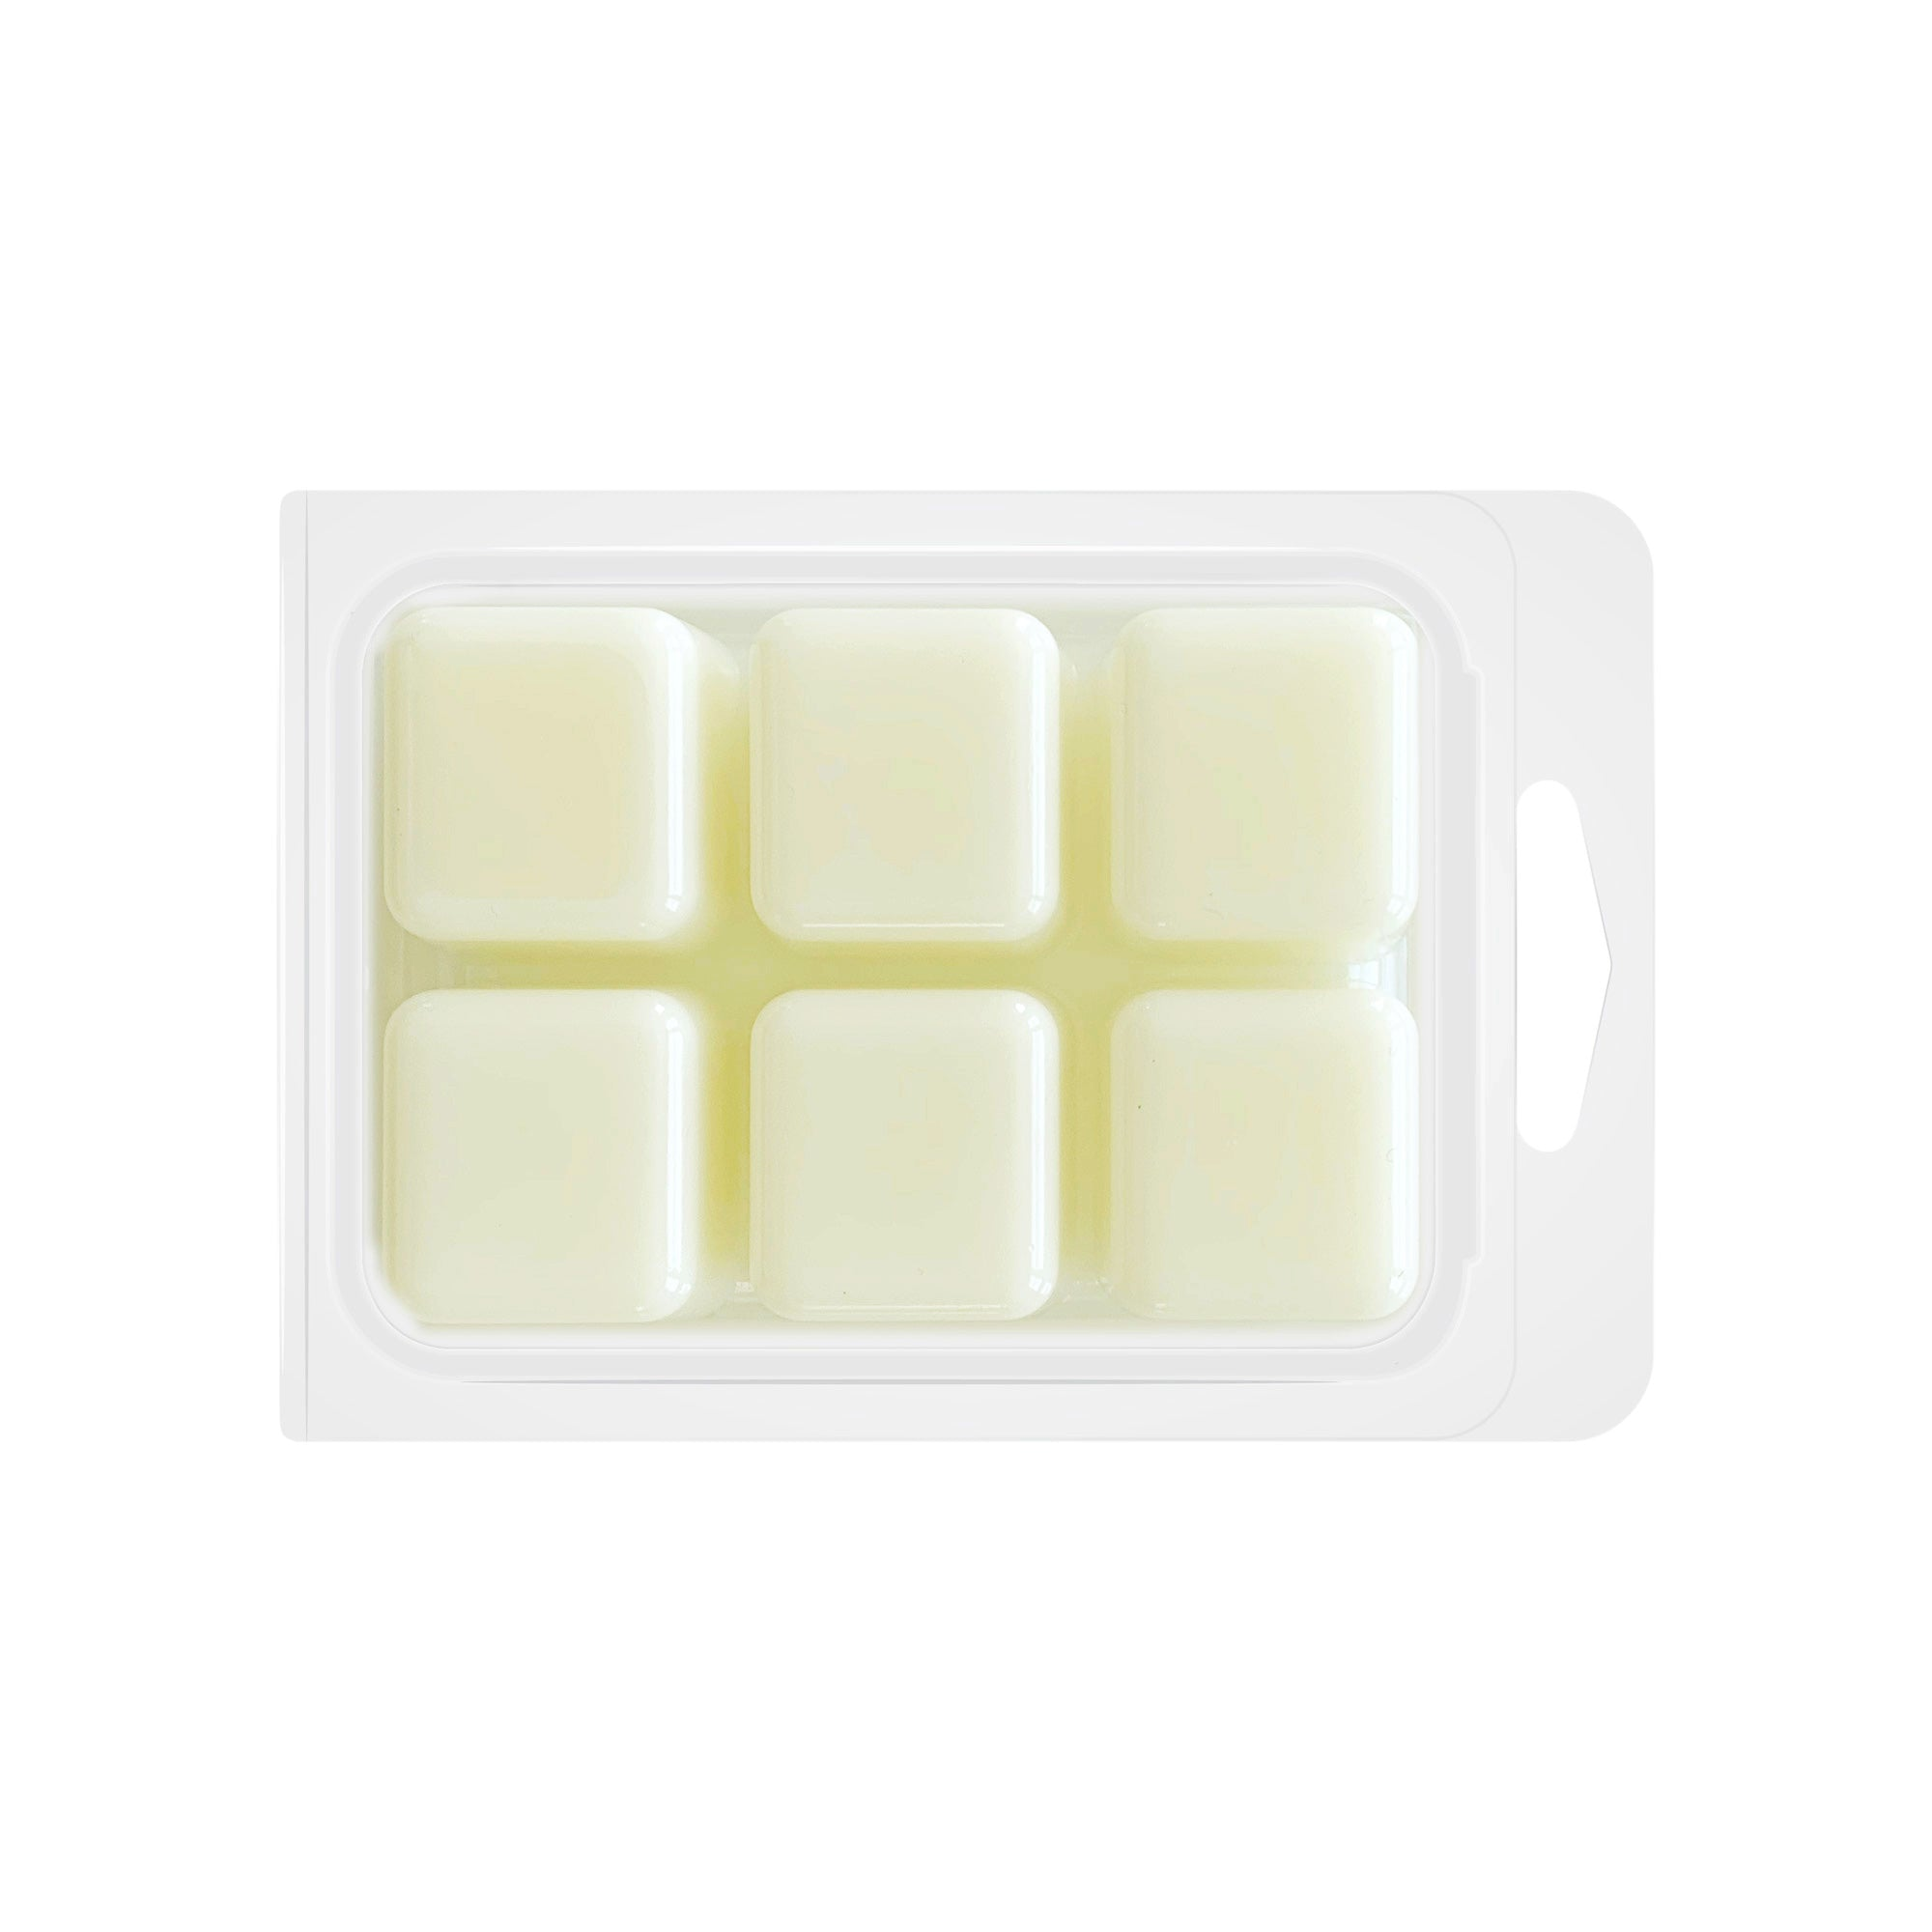 Spades & Lemonade Wax Melts